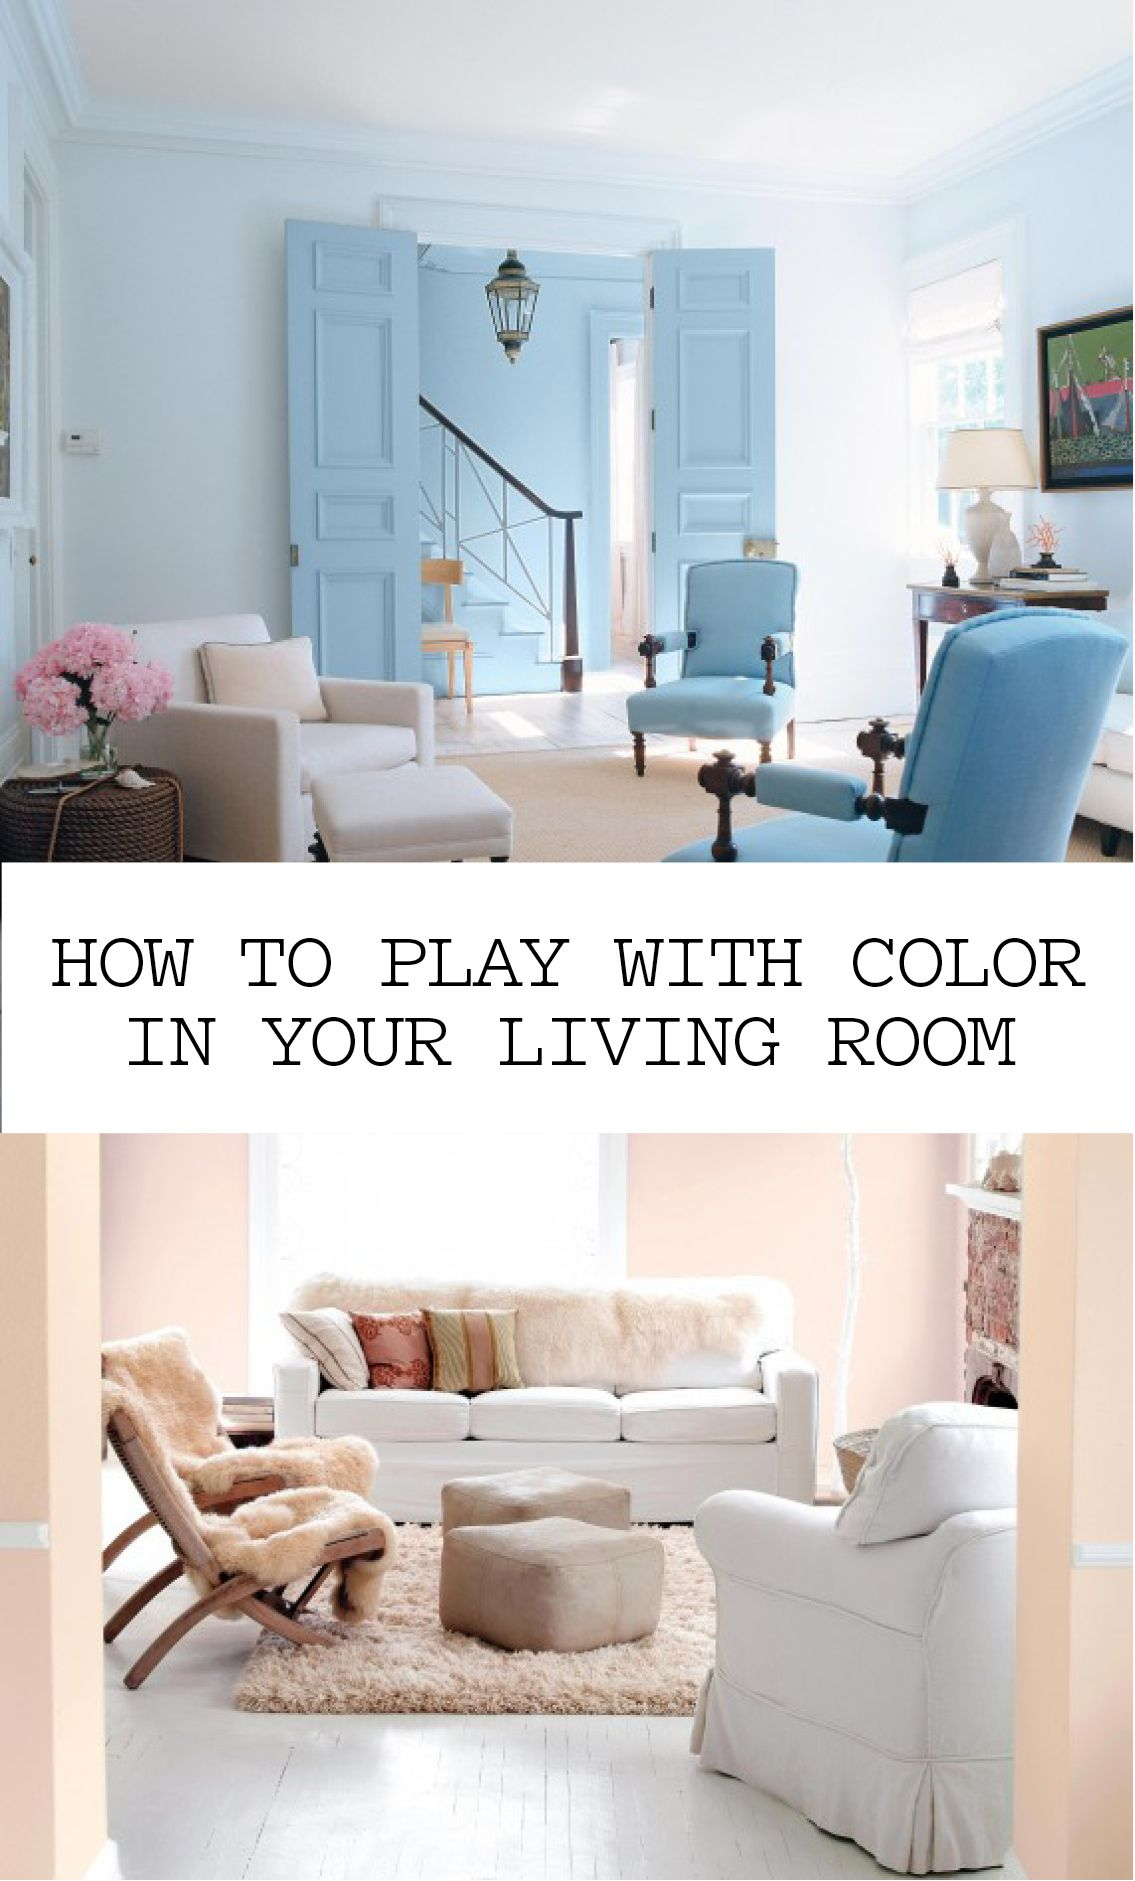 8 Ways to Play with Color in Your Living Room | Martha ...